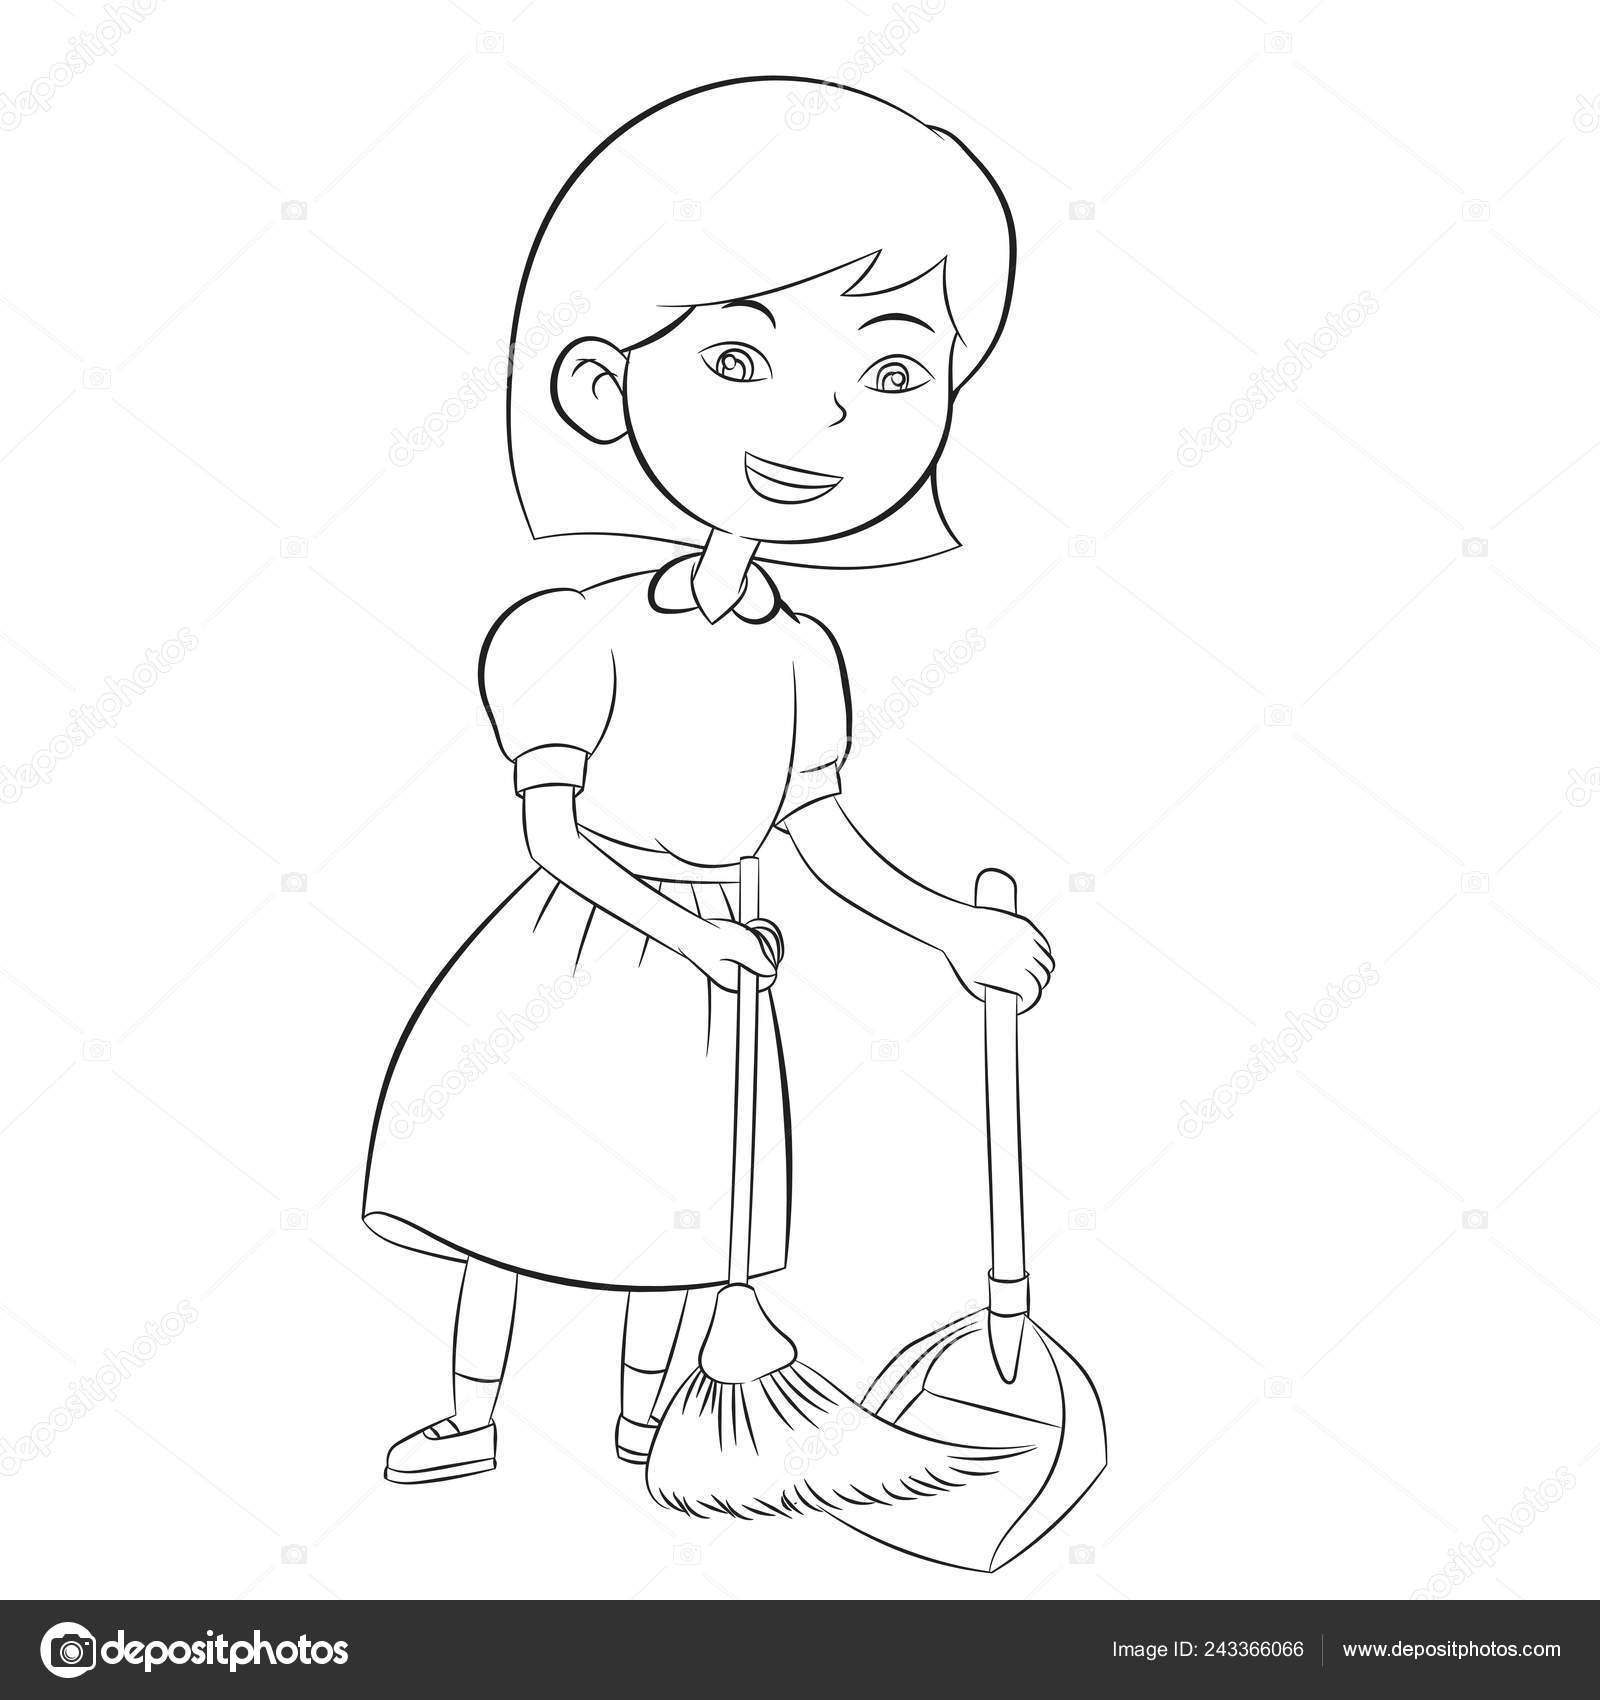 good girl sweeping broom clean home coloring book design kids stock vector c dcliner07 gmail com 243366066 good girl sweeping broom clean home coloring book design kids stock vector c dcliner07 gmail com 243366066